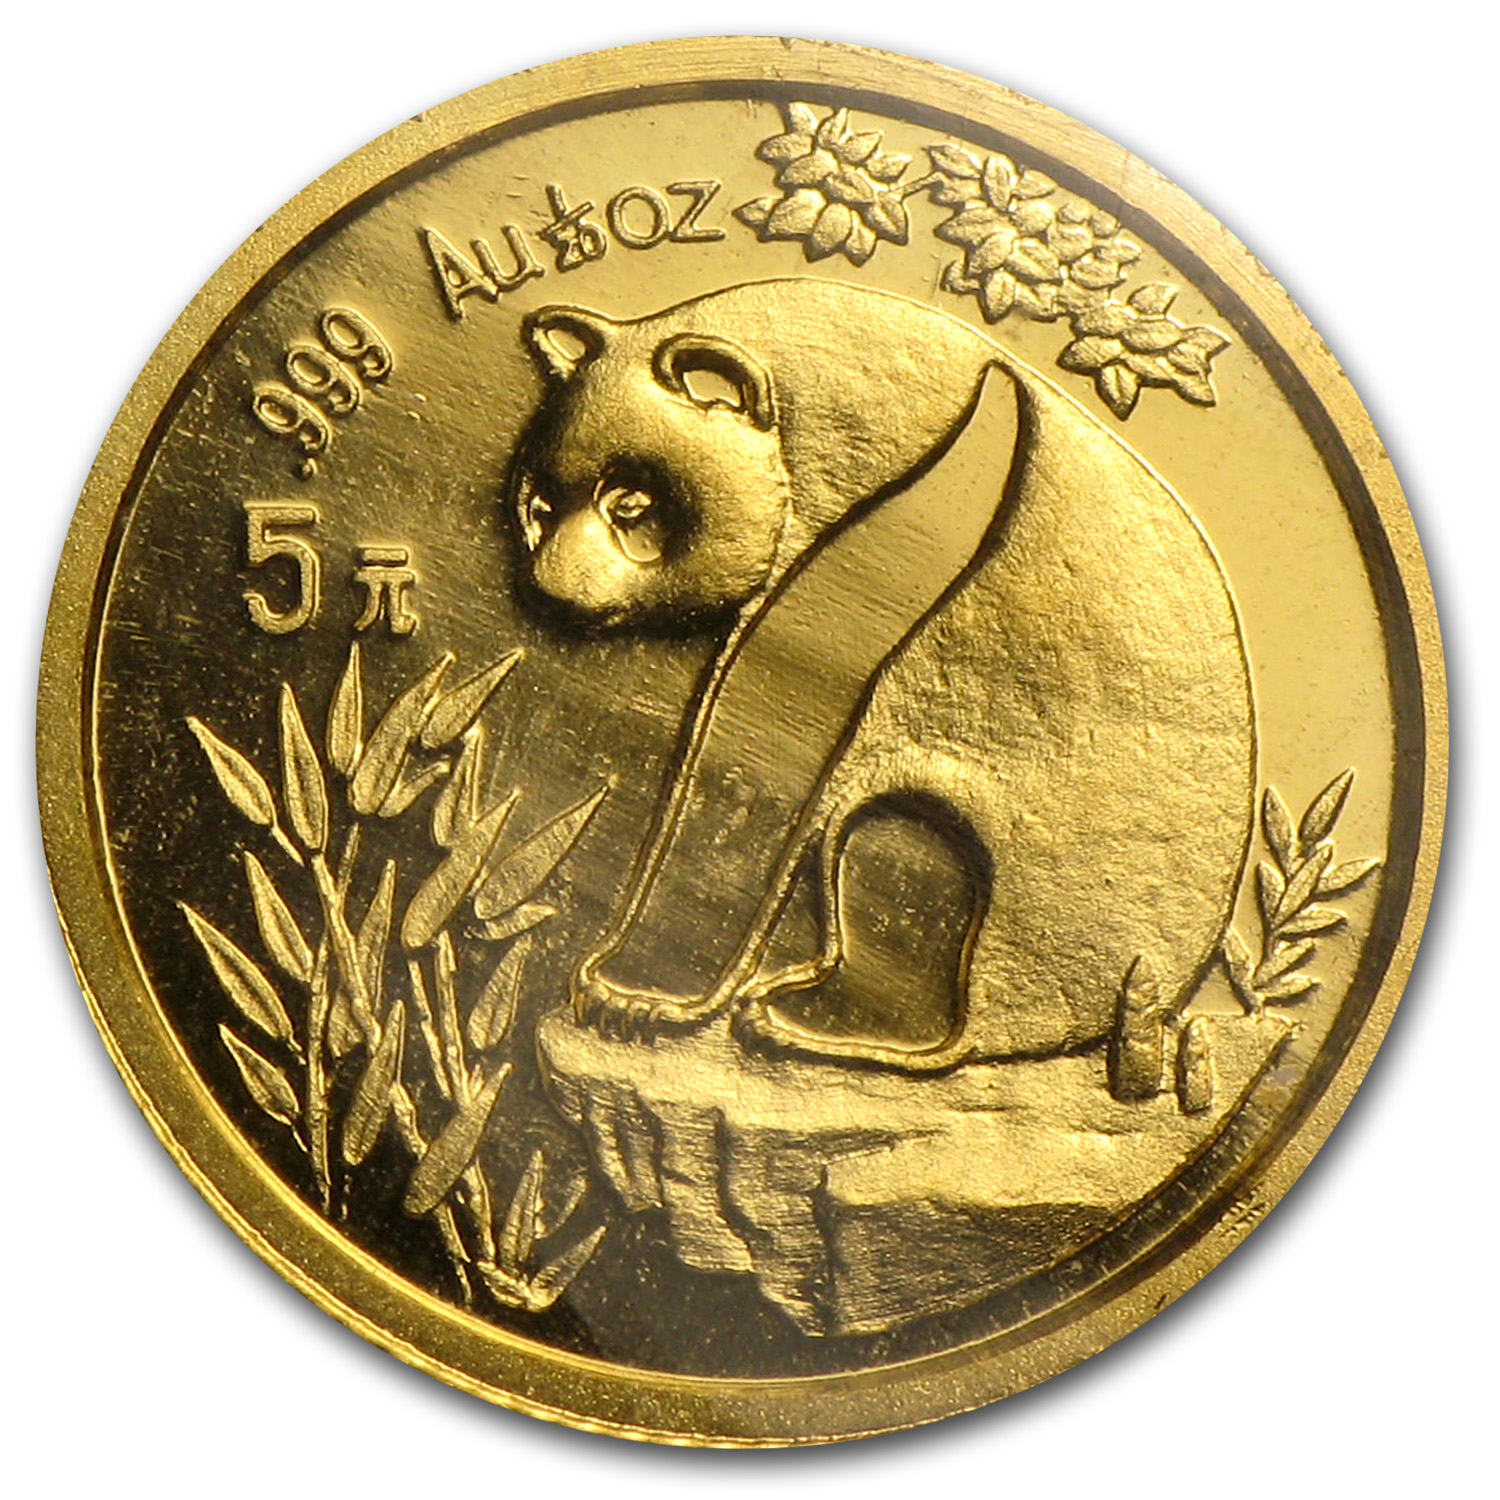 1993 China 1/20 oz Gold Panda Small Date BU (Sealed)